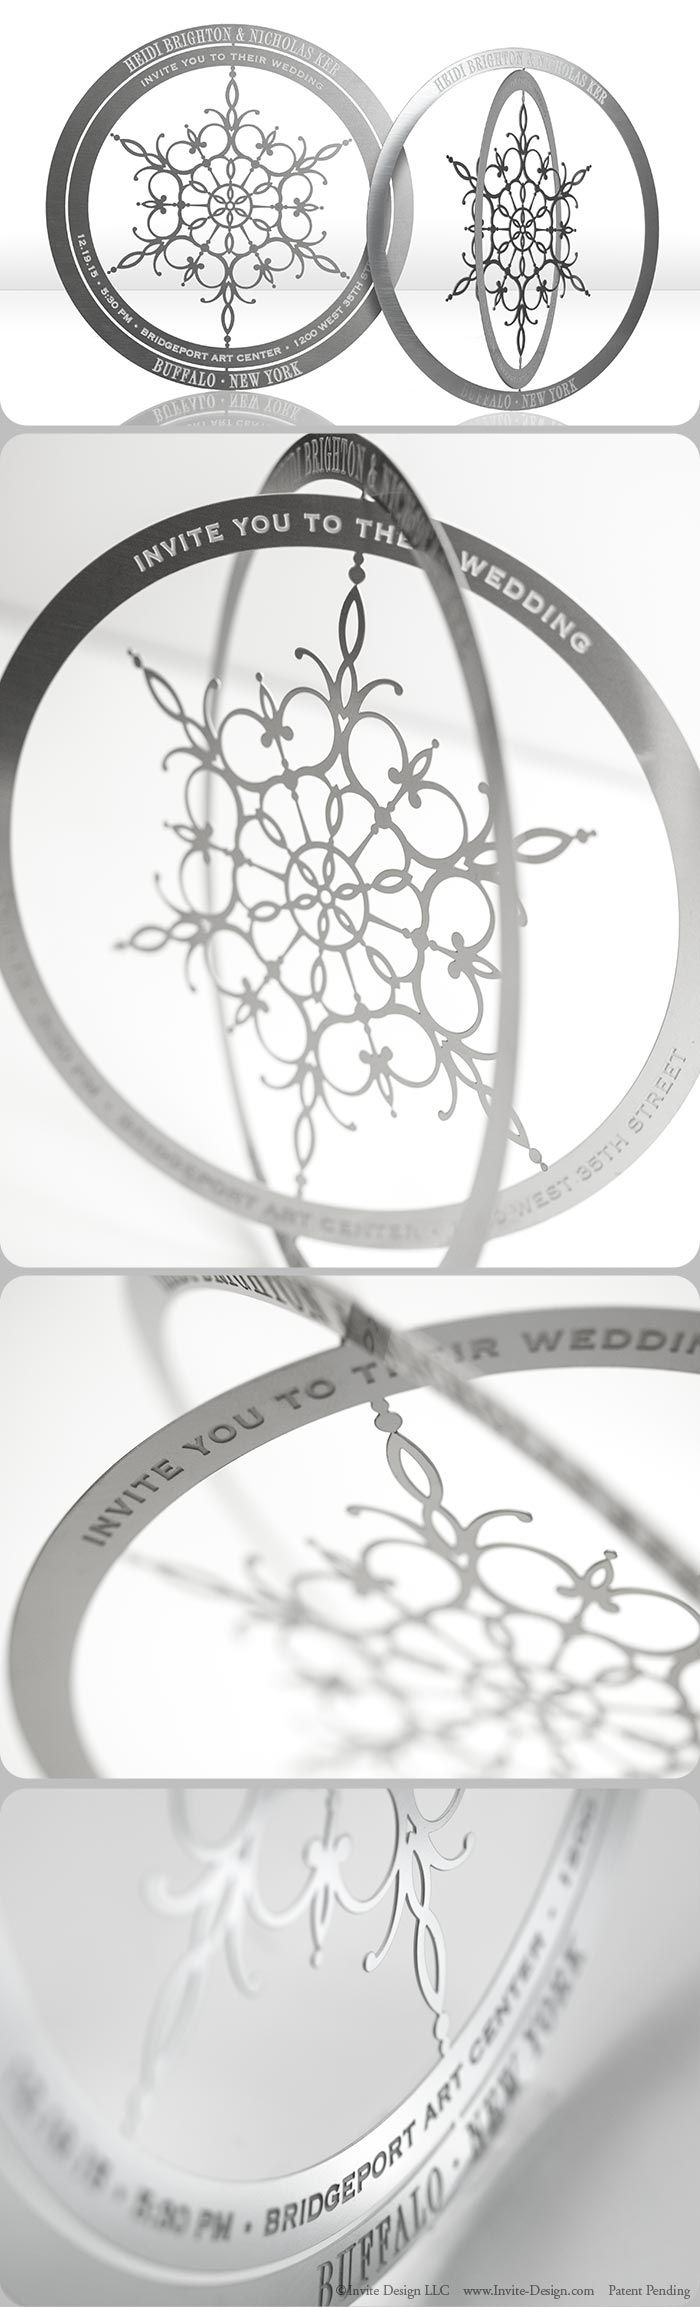 Snowflake metal wedding invitations mail flat, then transform into an ornament…